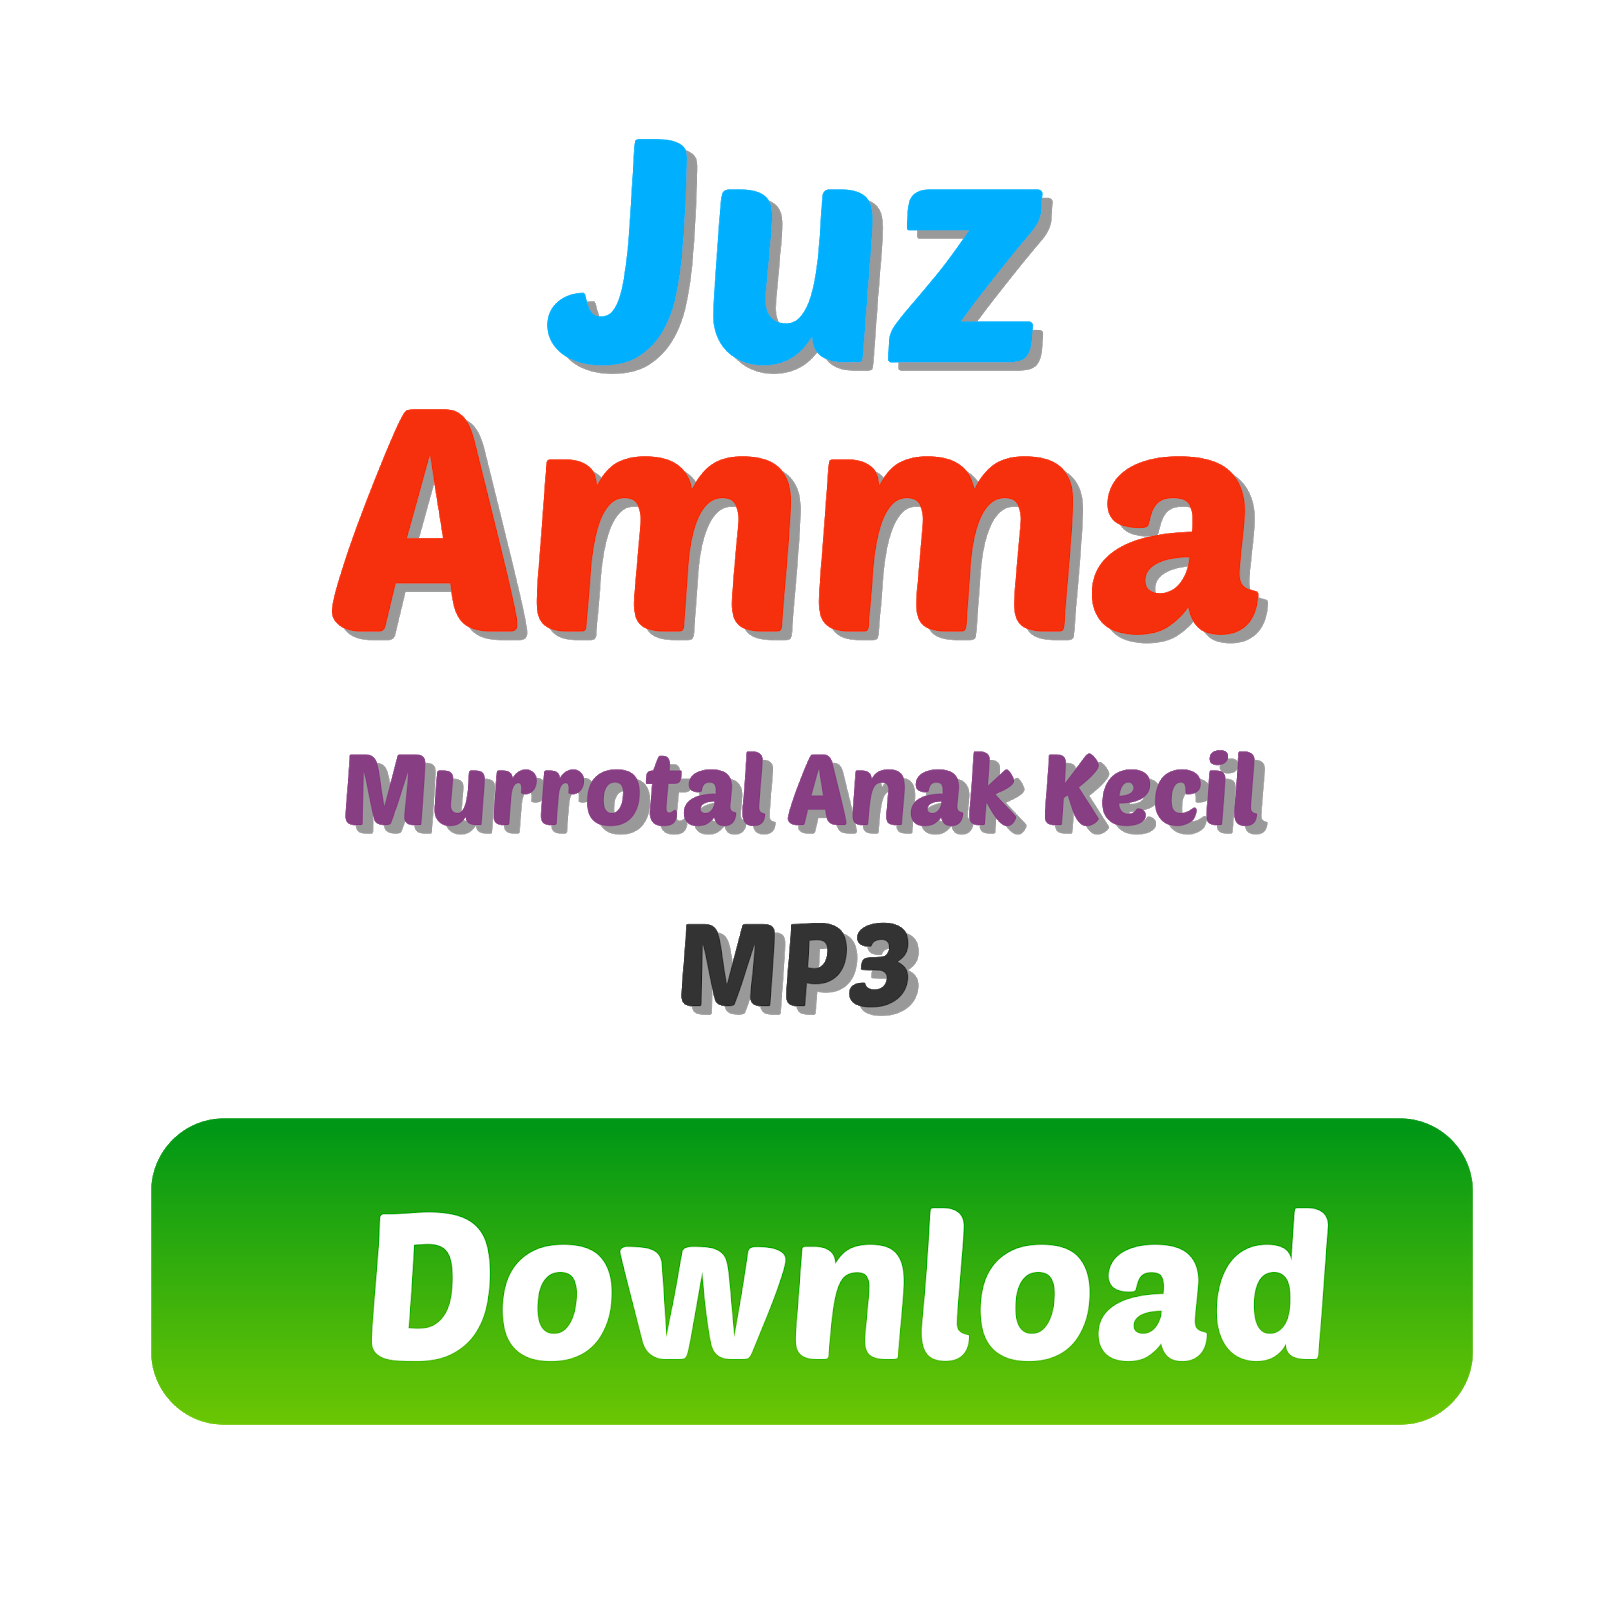 Download MP3 Murrotal Anak Kecil